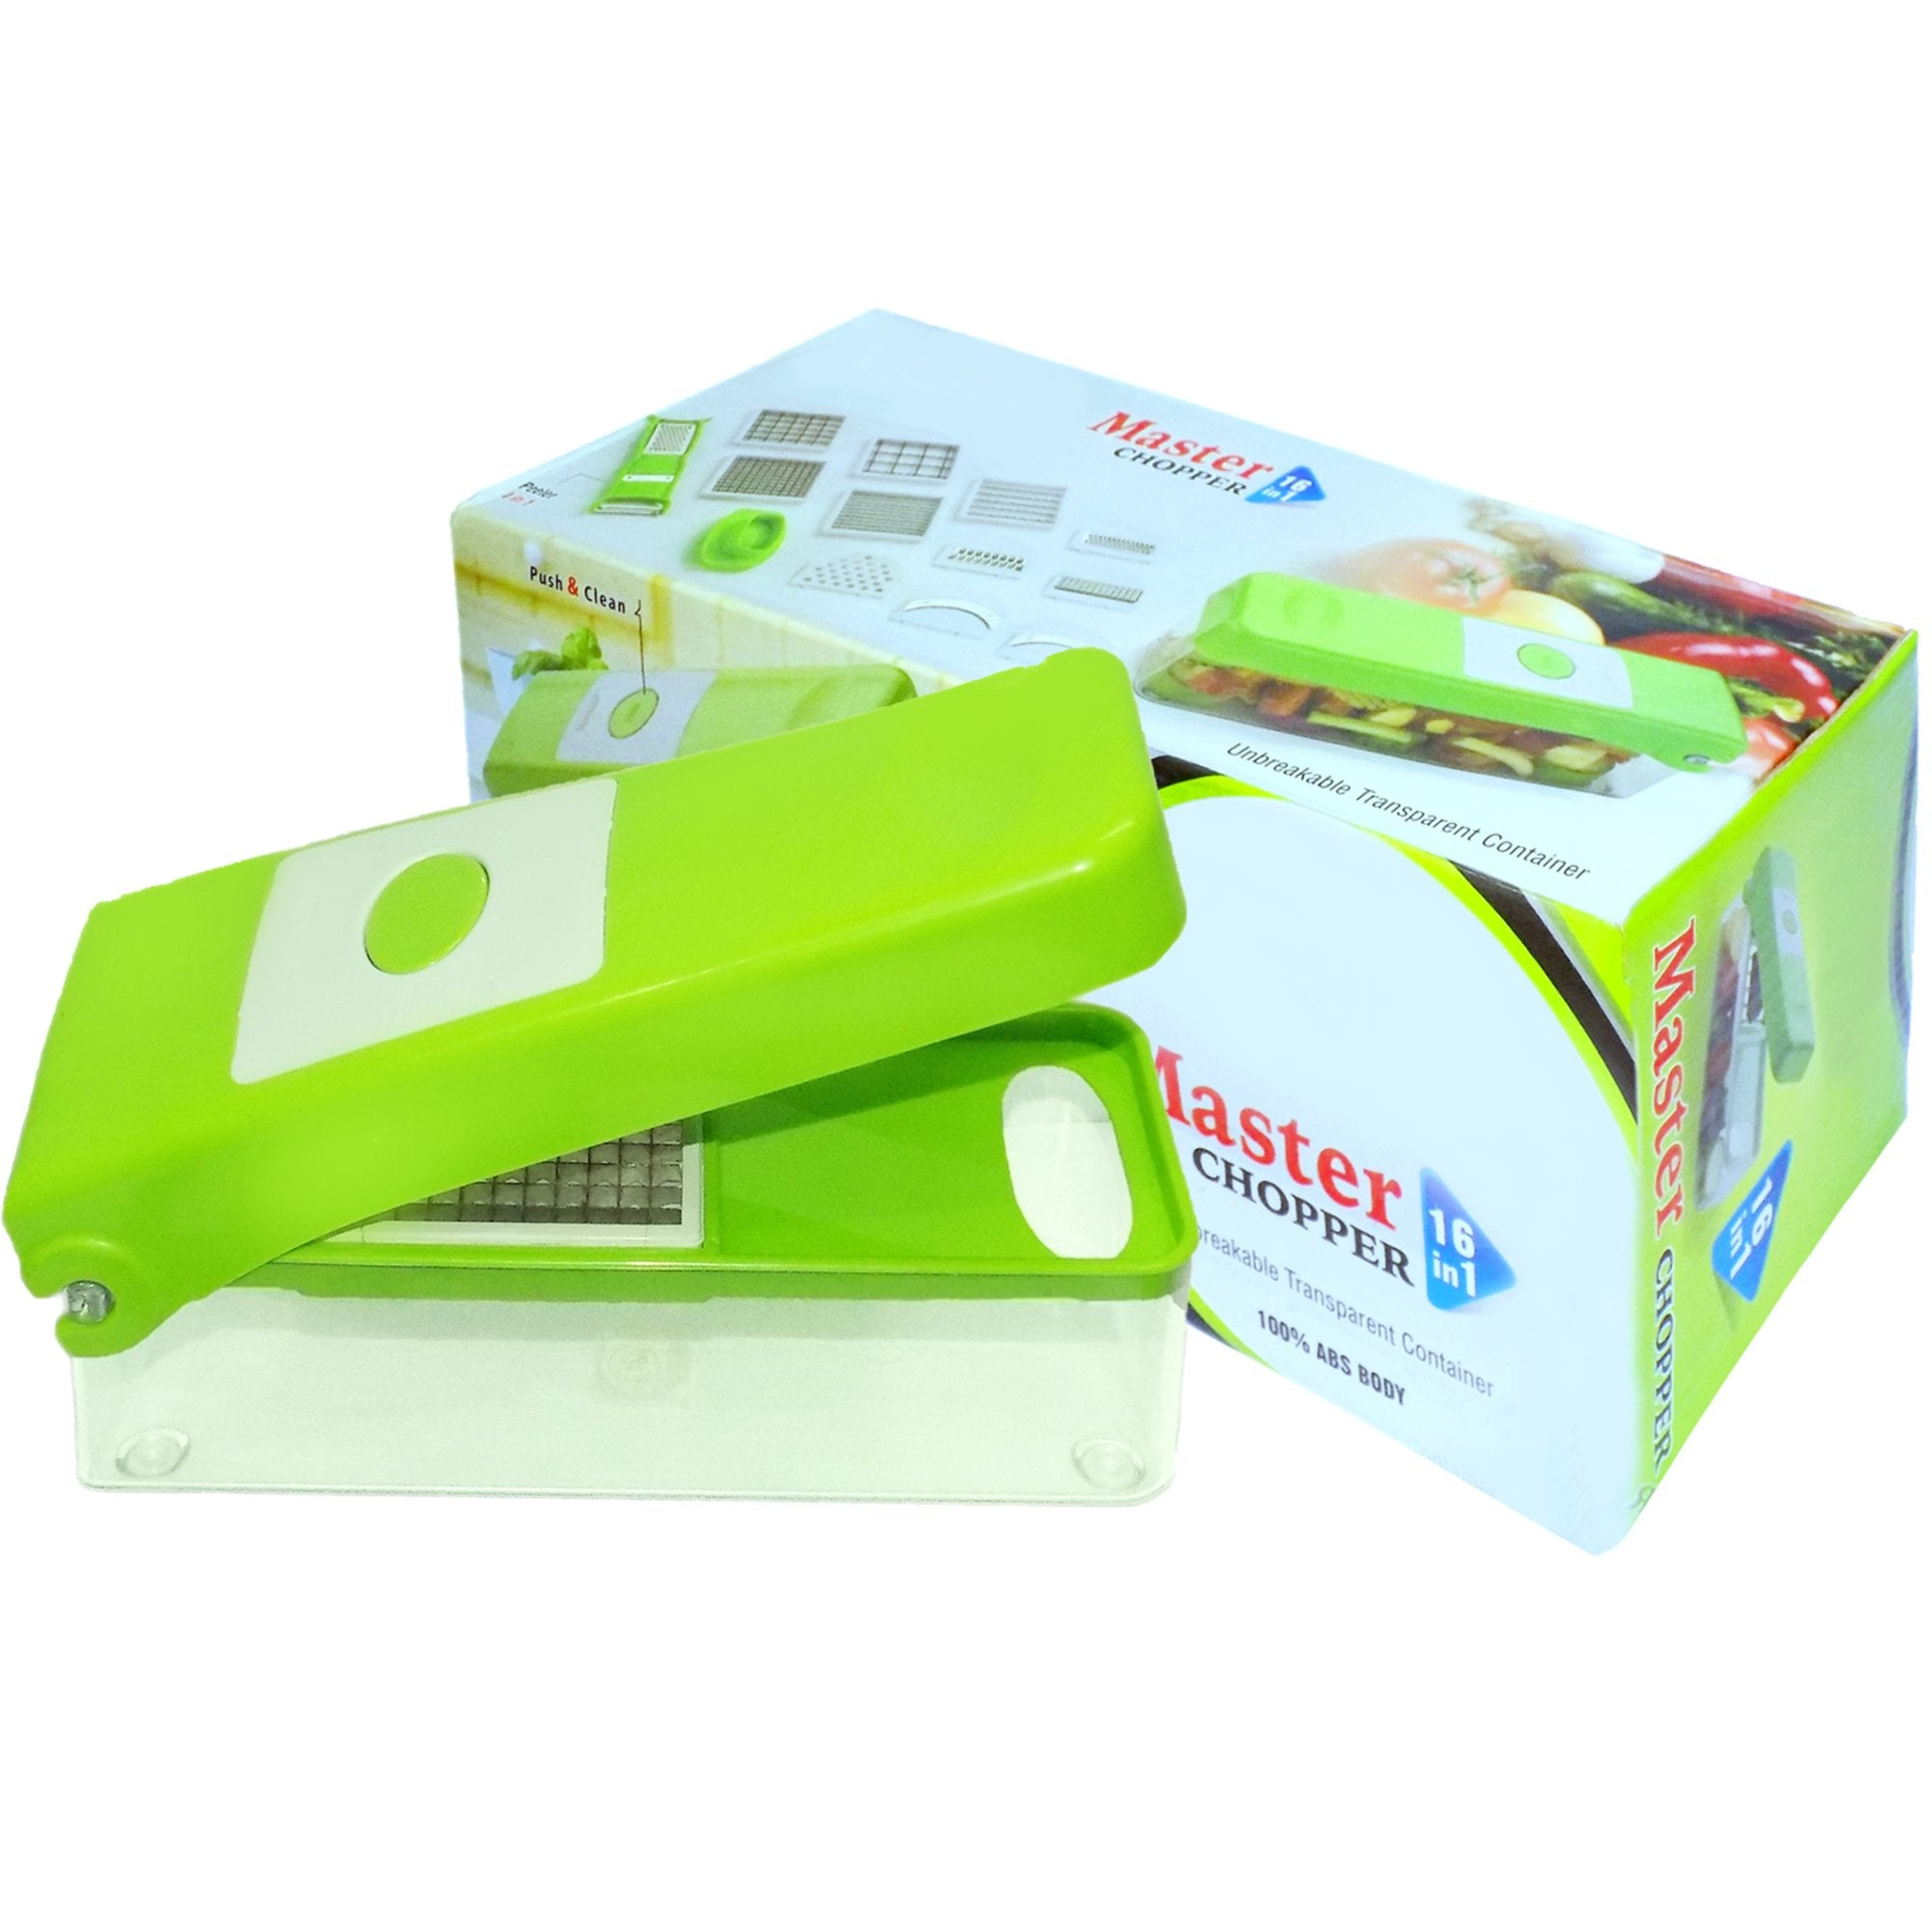 2203 Plastic Big 16 in 1 Dicer with Cutter with easy Push and pull Button - DeoDap